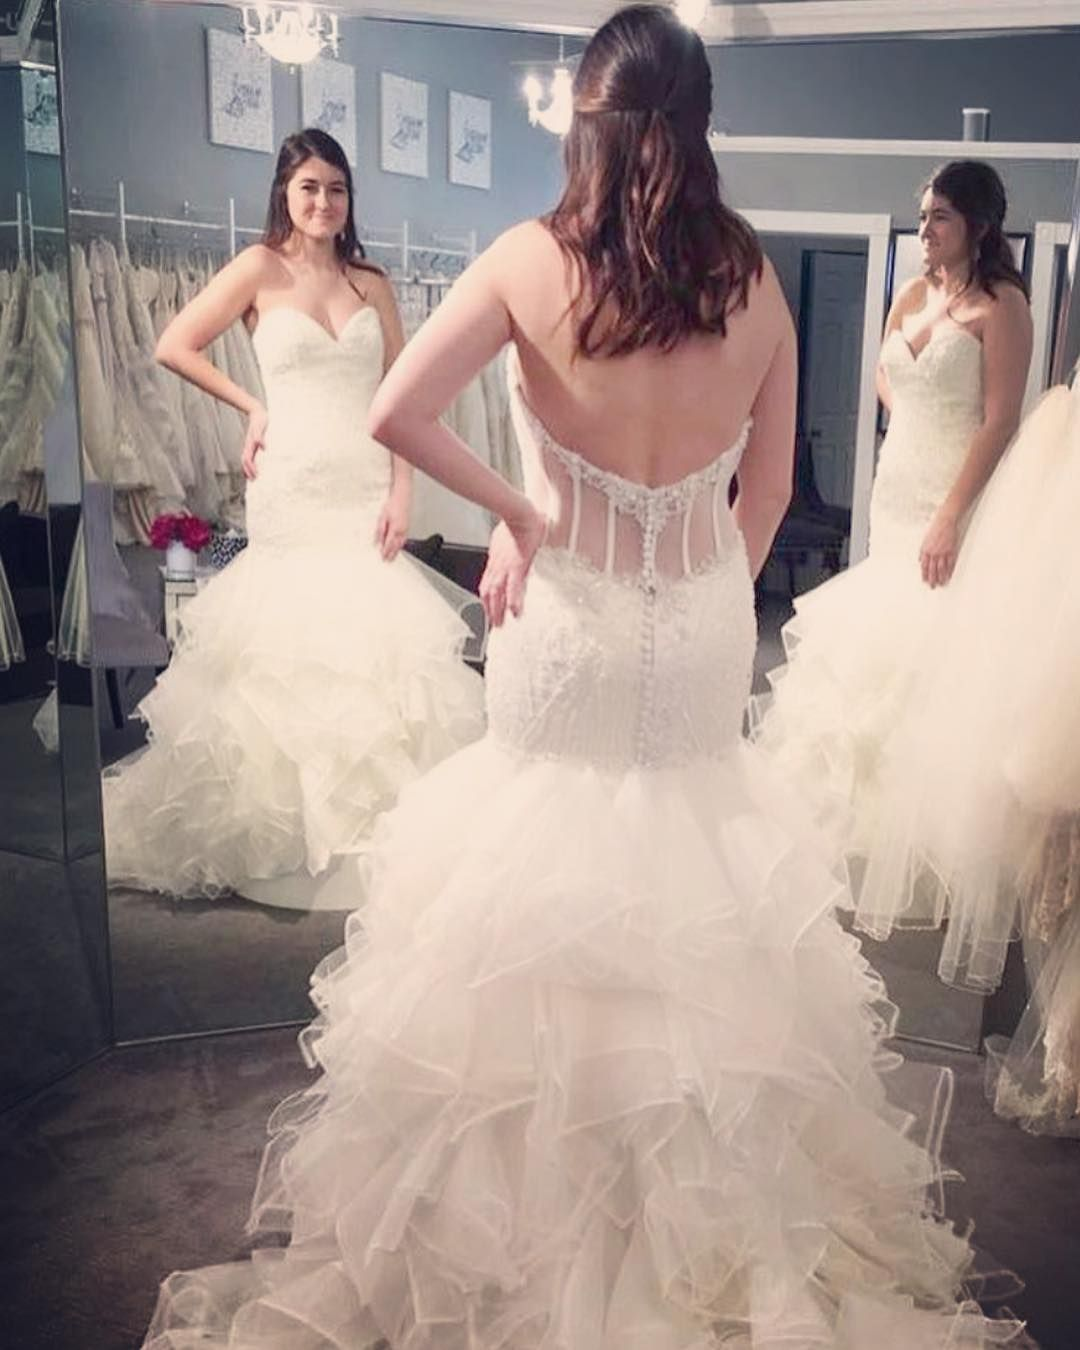 It May Take You Appointment After Appointment And Salon After Salon Or It May Be The First One You Try On Every Bride With Images Bridal Dresses Dresses Special Dresses